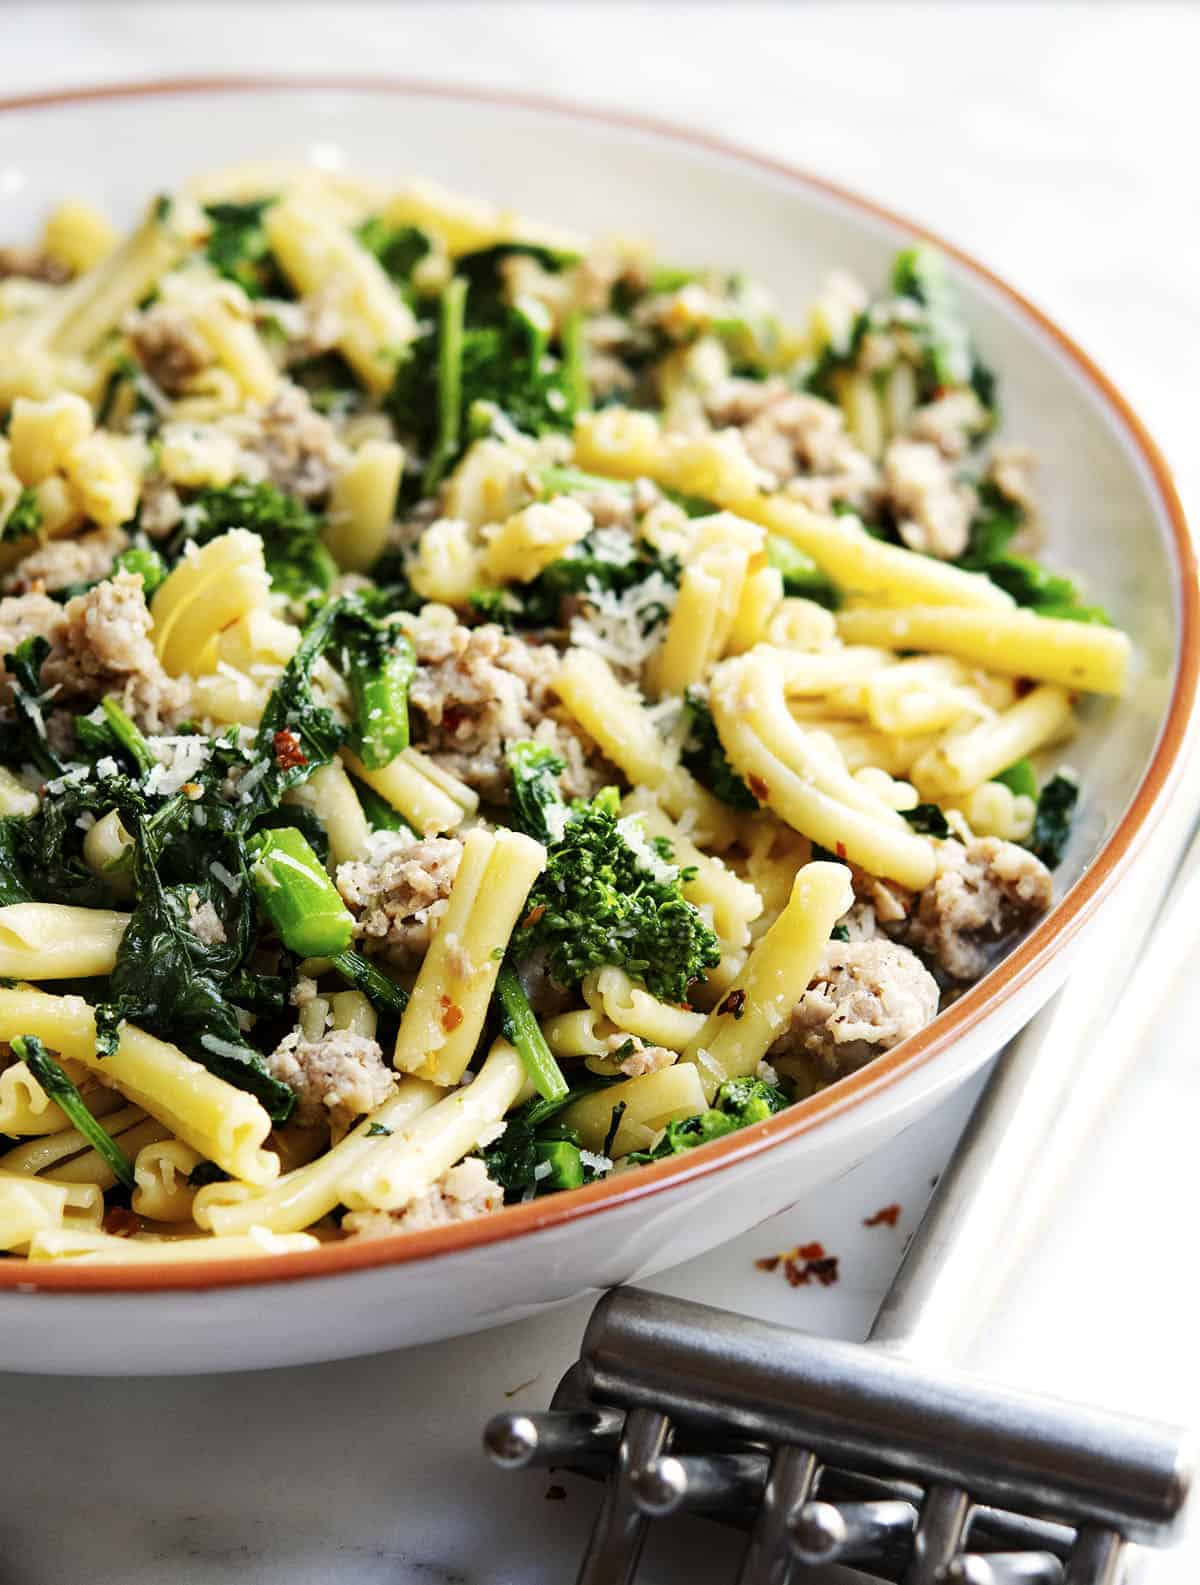 Broccoli Rabe and Sausage Pasta served in a white ceramic bowl